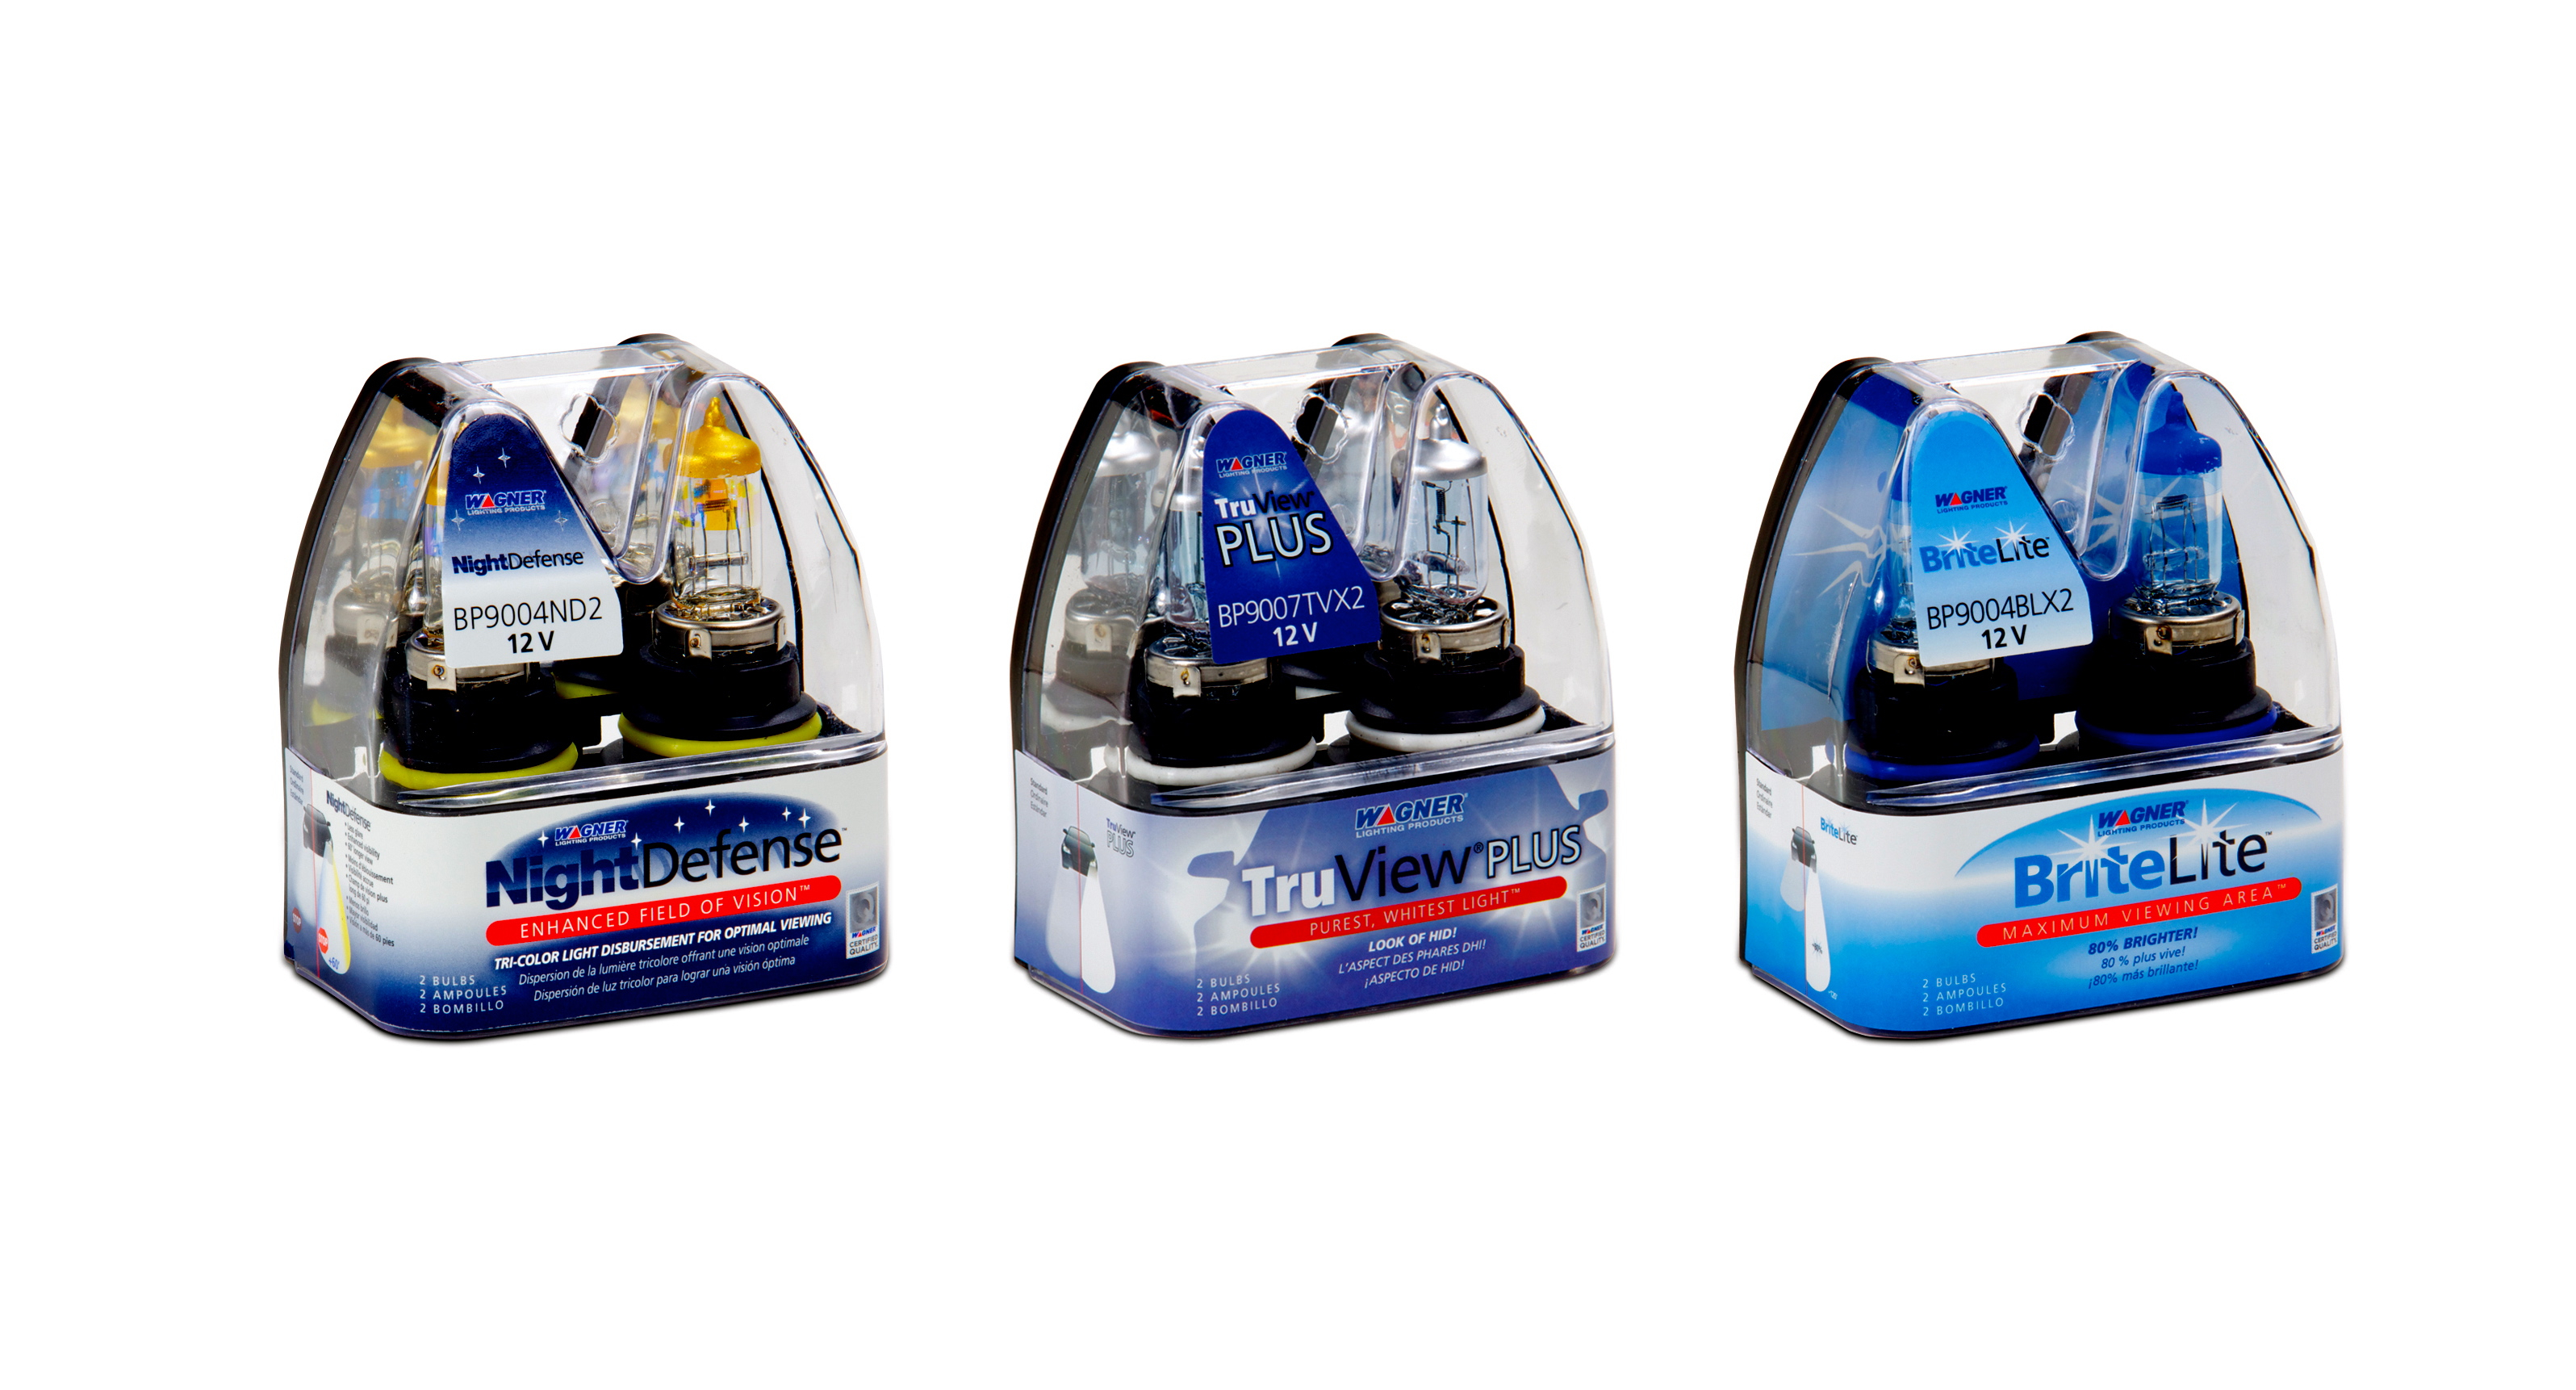 Expanded Wagner headlamp line, retail-friendly packaging